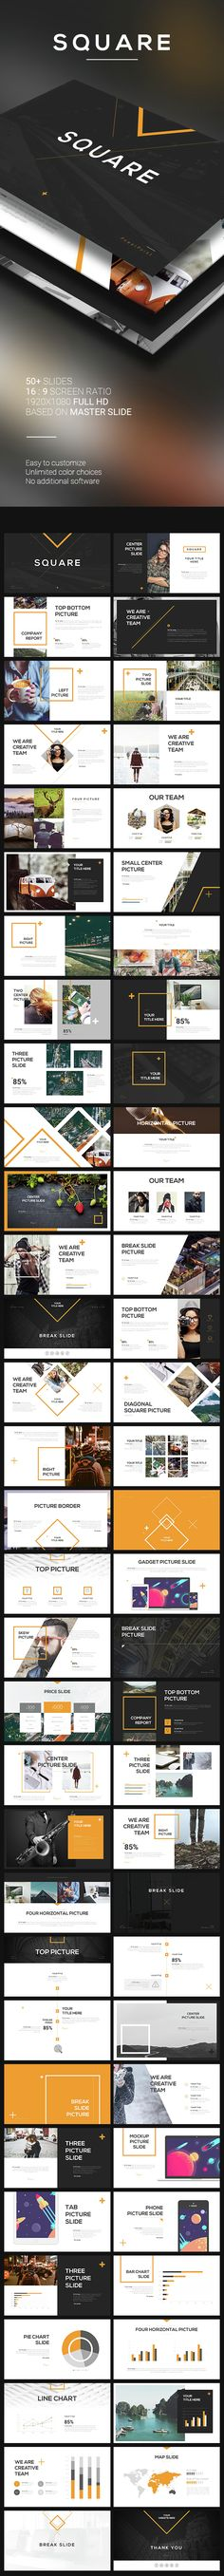 Square PowerPoint Template